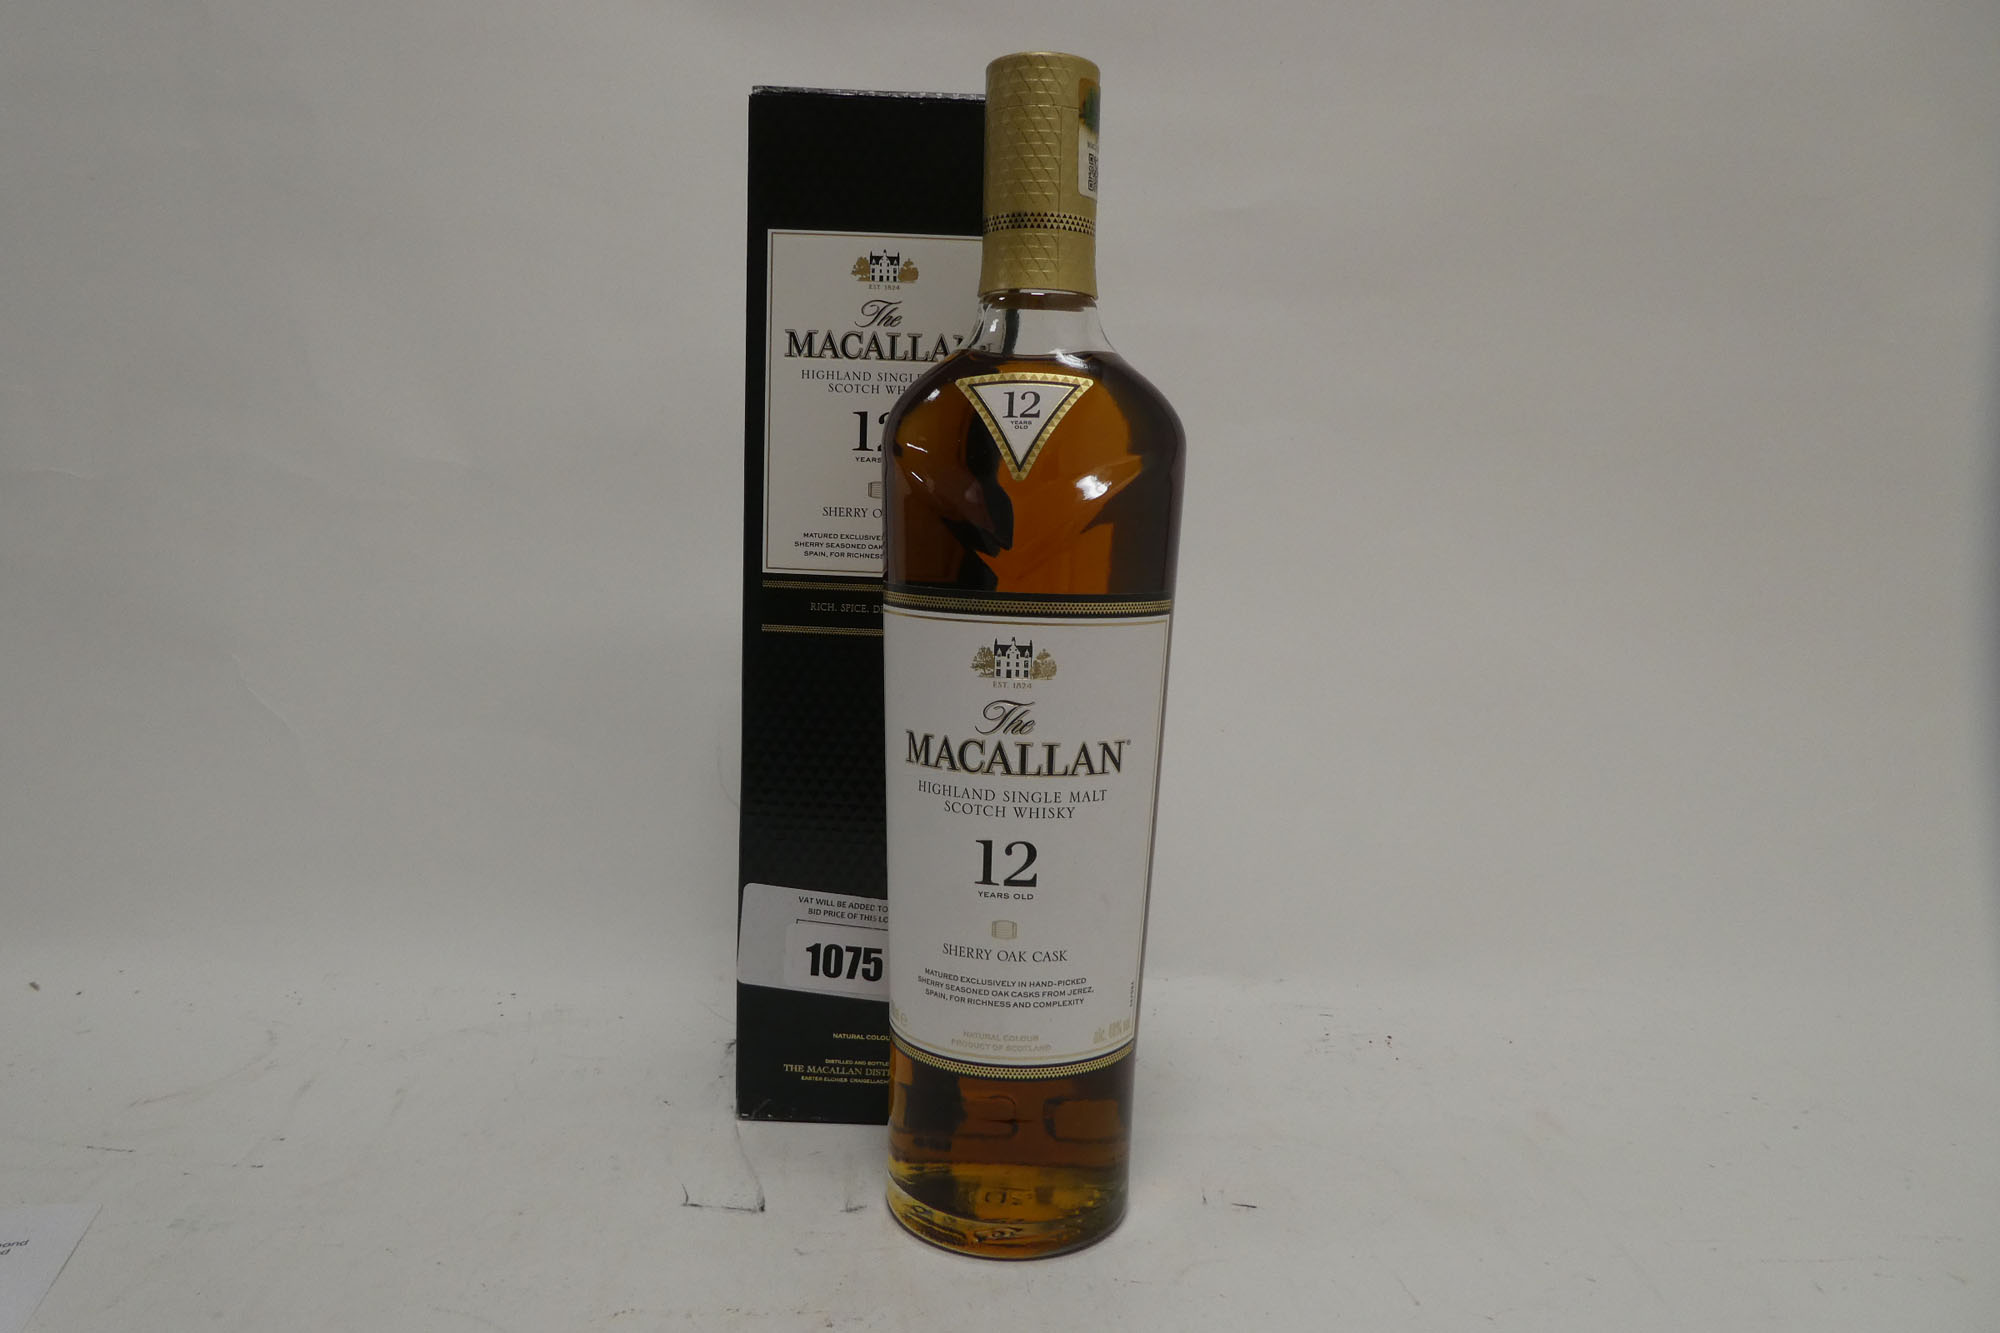 A bottle of The MACALLAN 12 year old Sherry Oak Cask Highland Single Malt Scotch Whisky with box